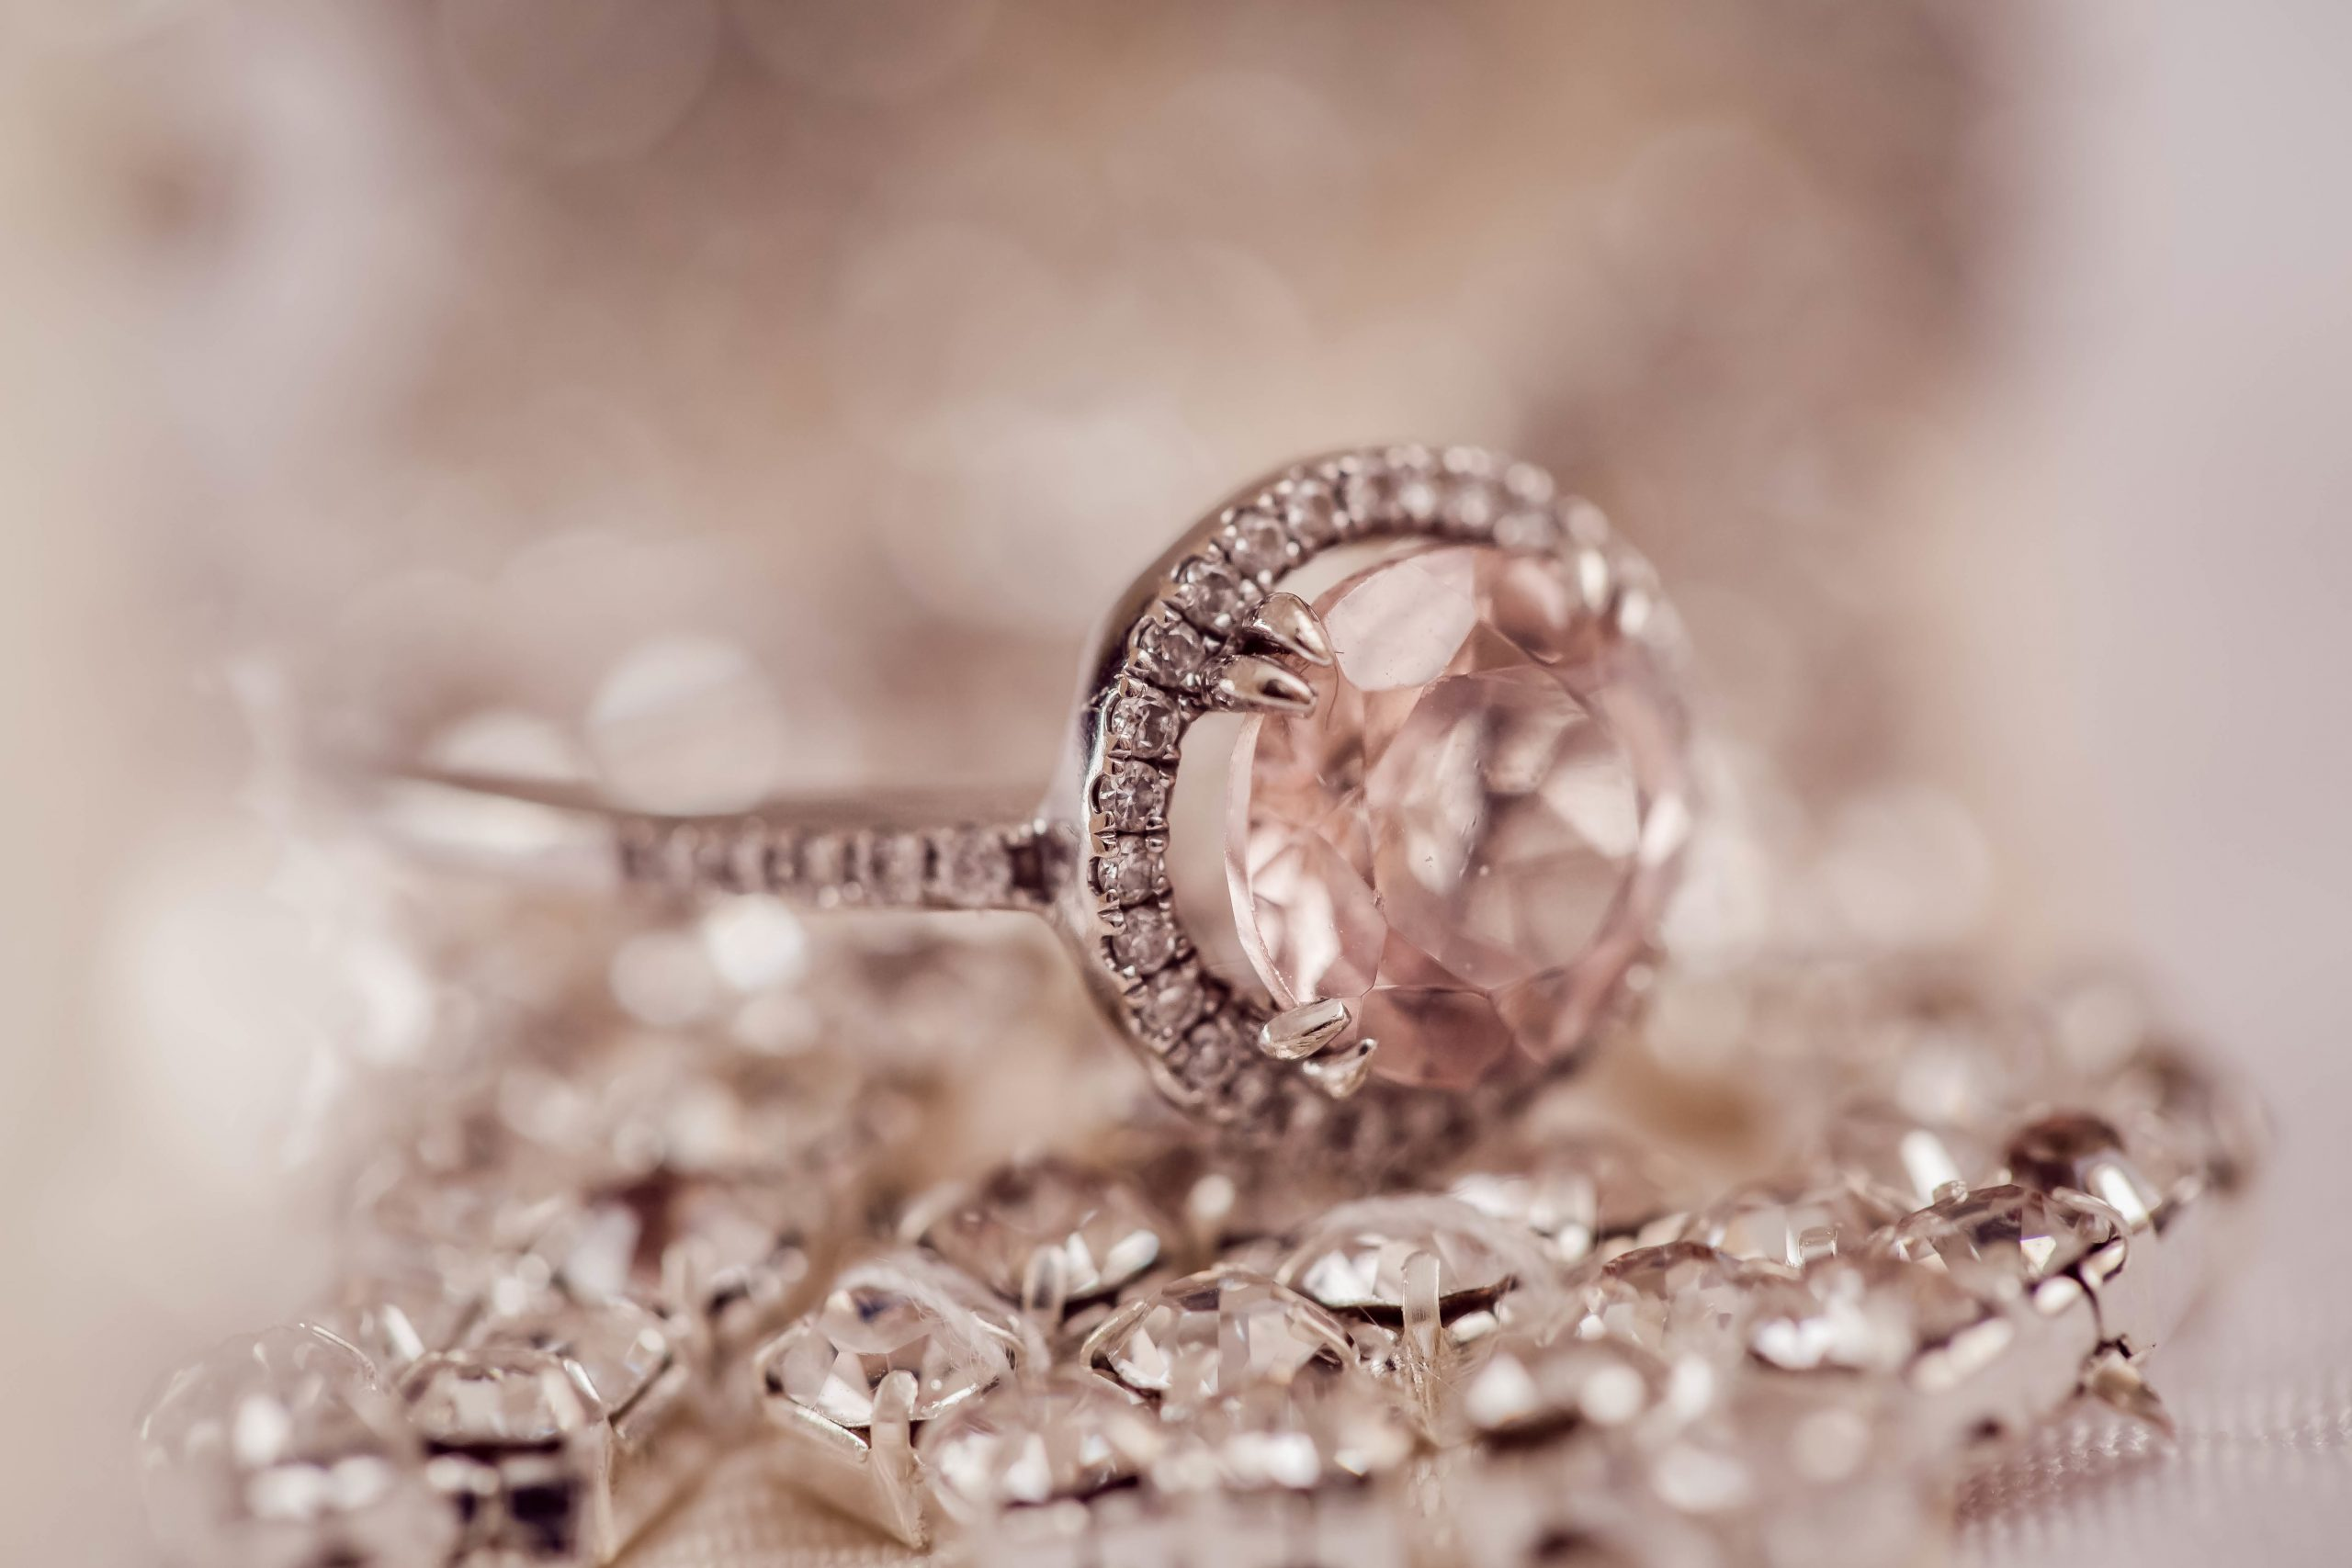 You are currently viewing Gemstones Too Hot to Handle | Discover what's HOT in the world of gem jewellery